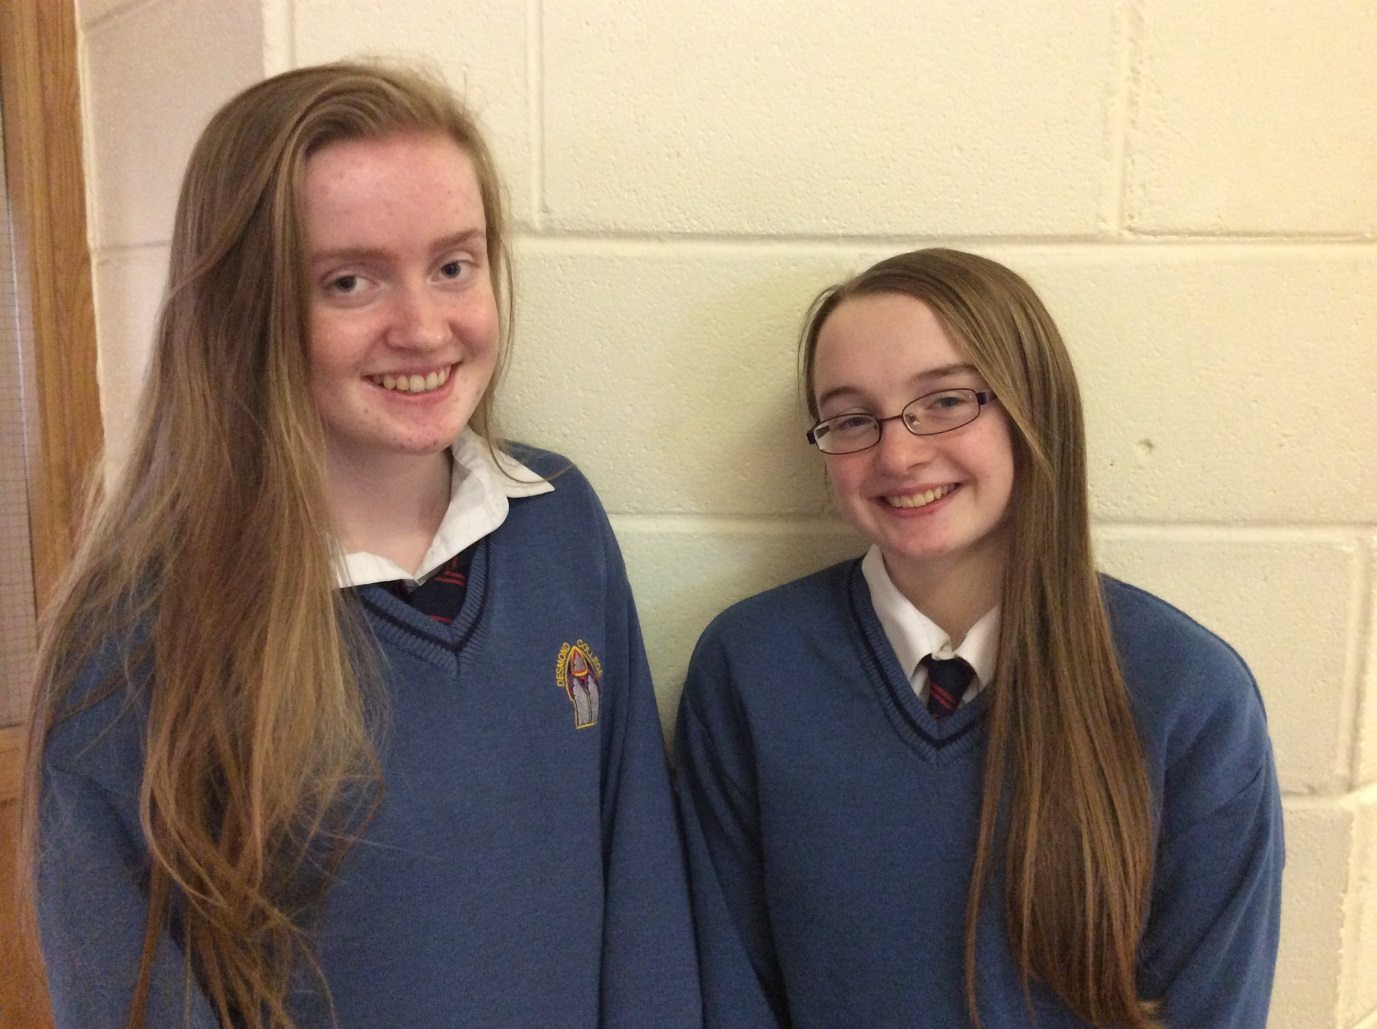 2016 BT Young Scientist Profile: Niamh Liston and Hannah Barrett